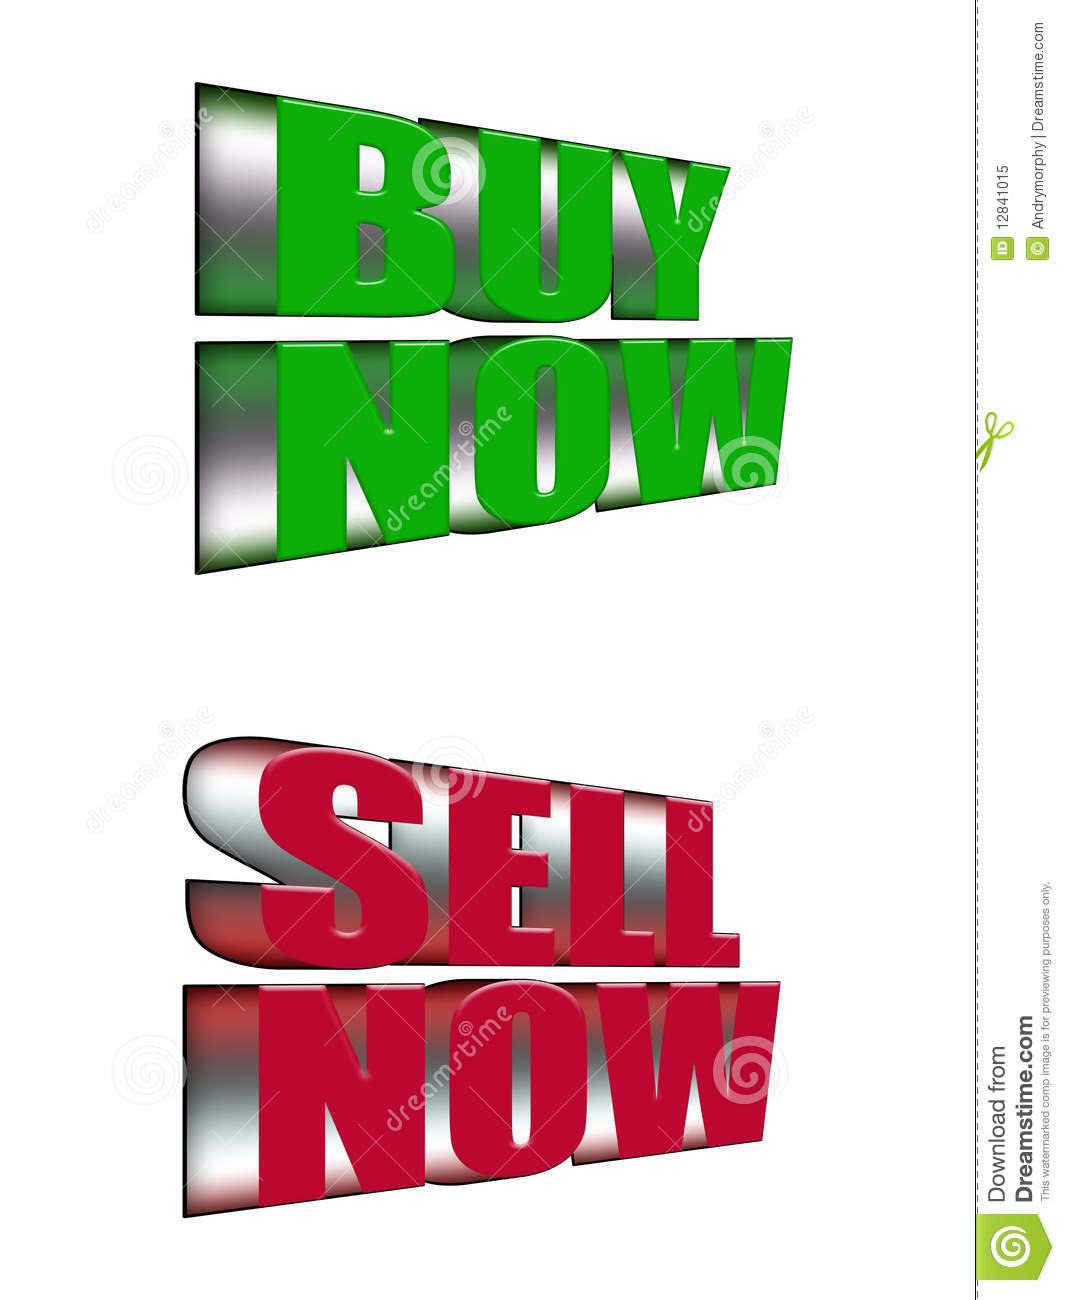 how to know when to buy and sell shares